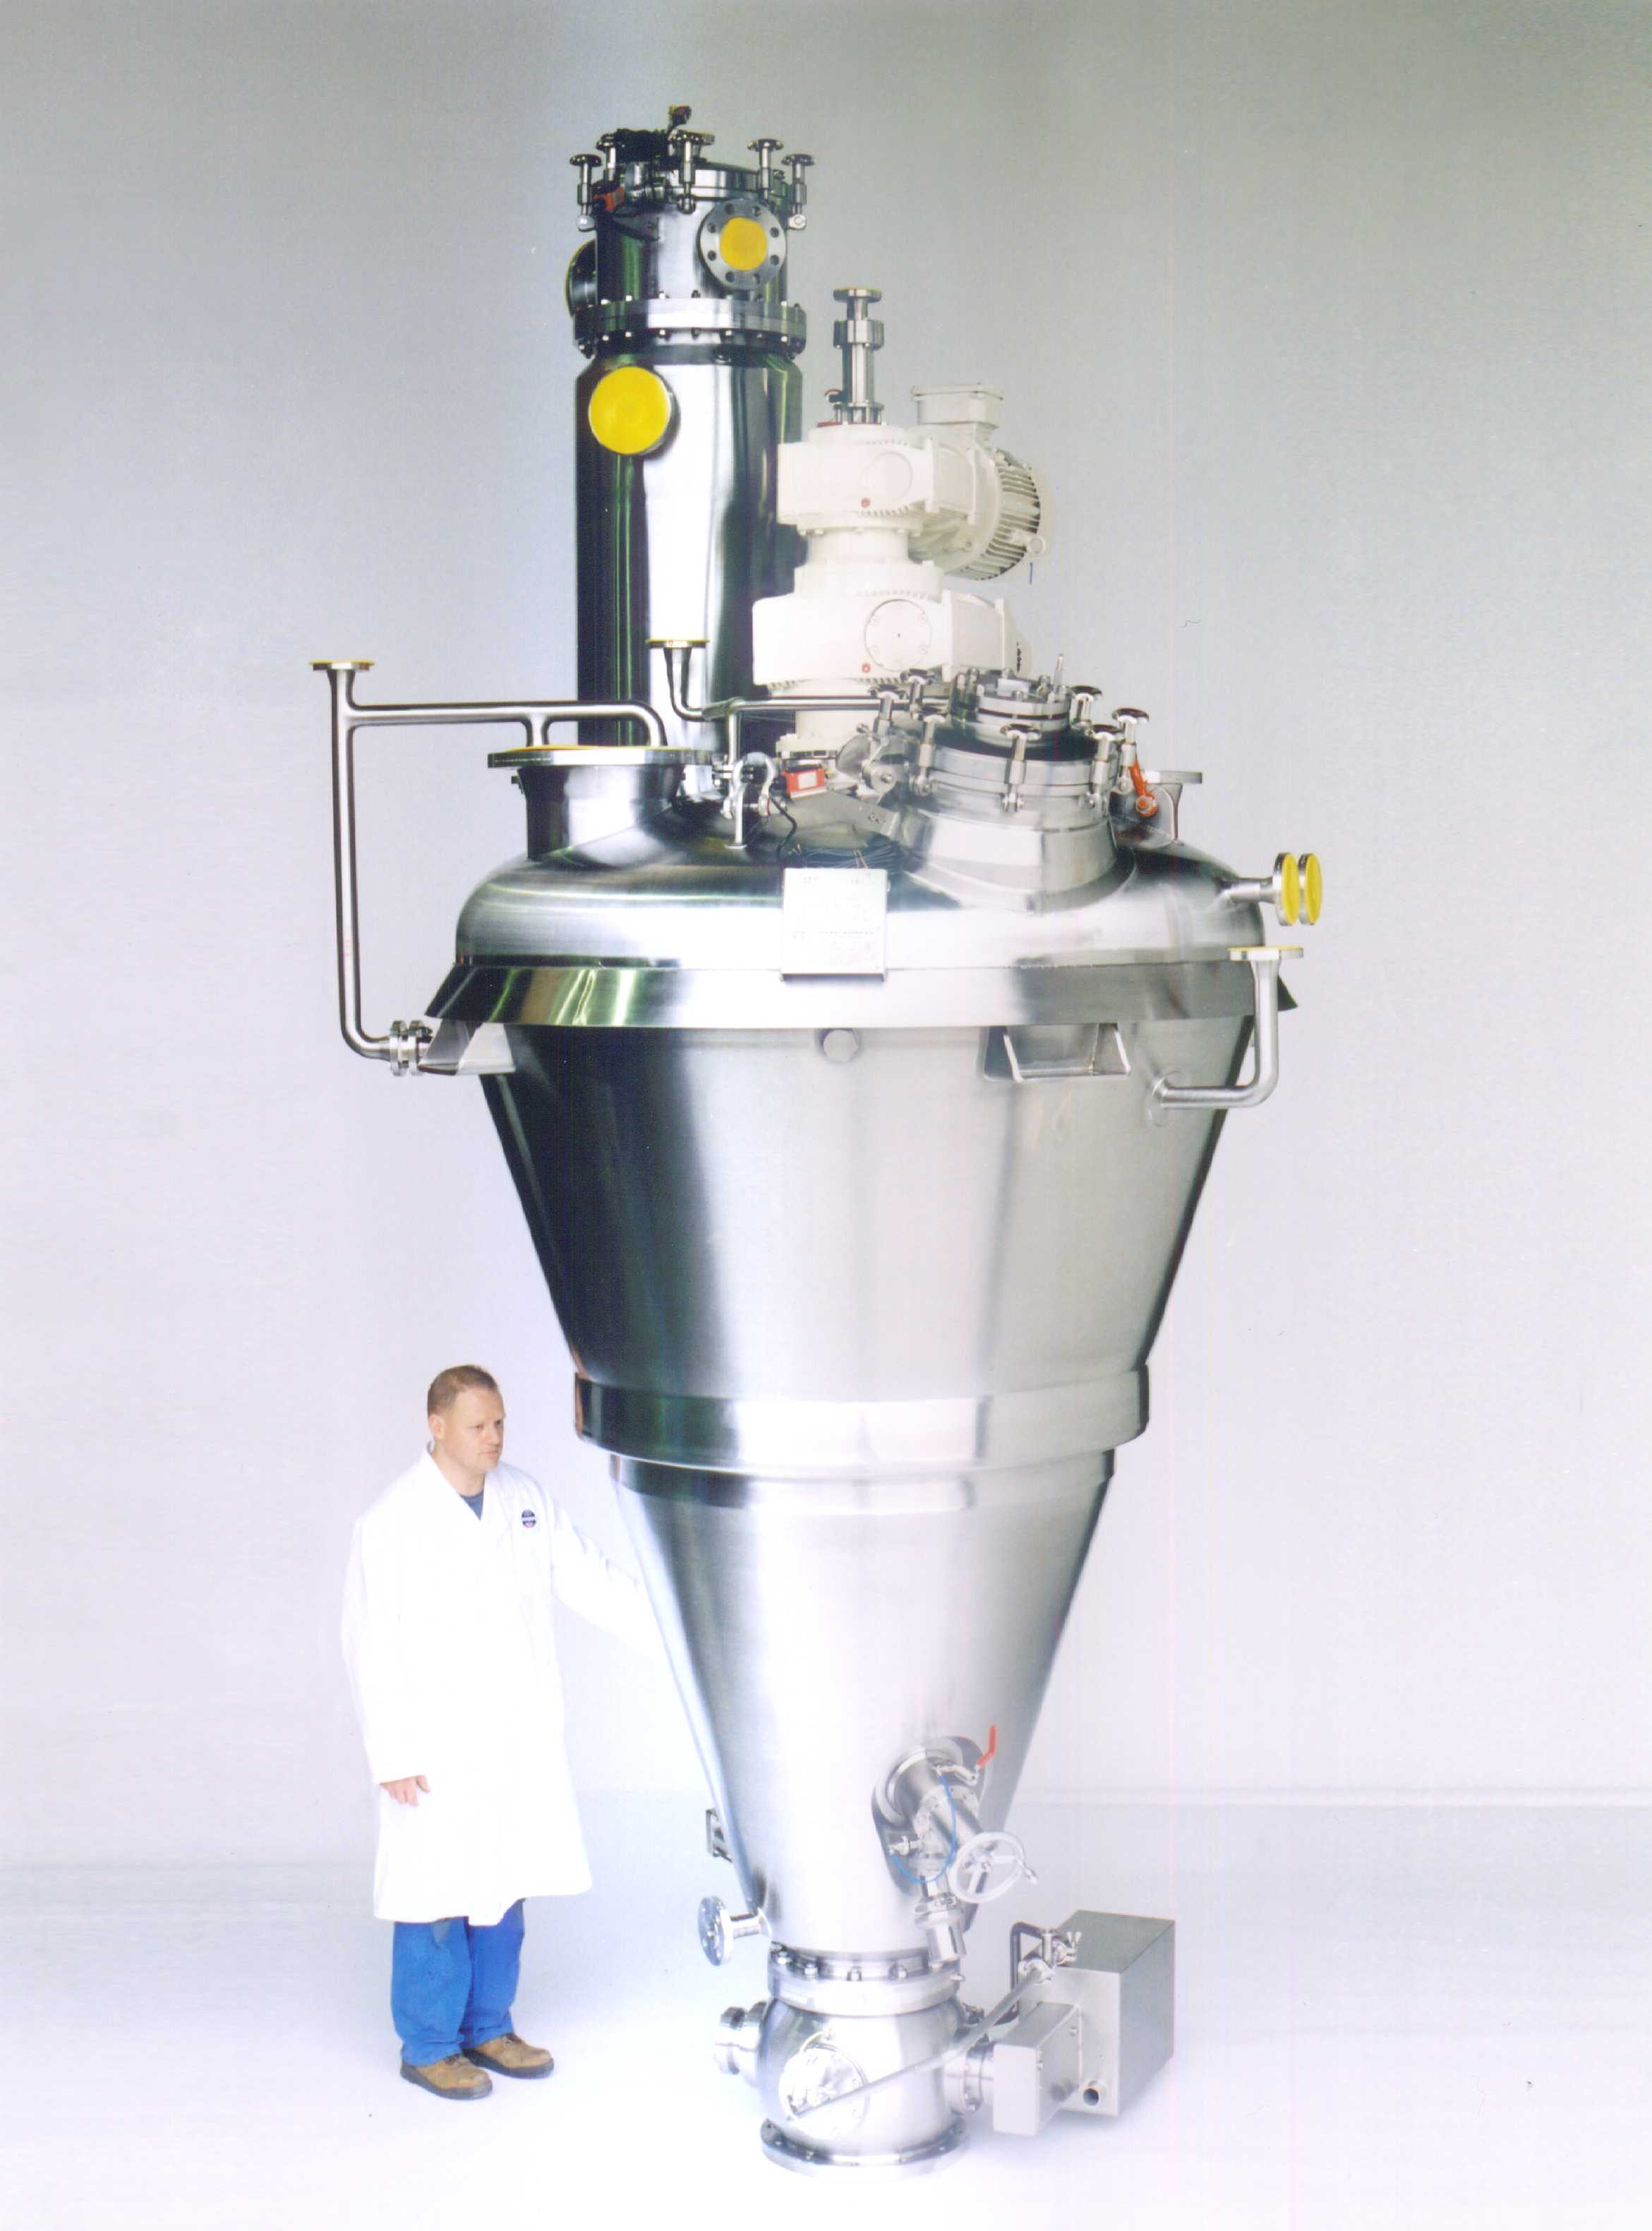 The Vrieco-Nauta® conical screw vacuum dryer is a universal batch dryer suitable for drying powders, granules, pastes an